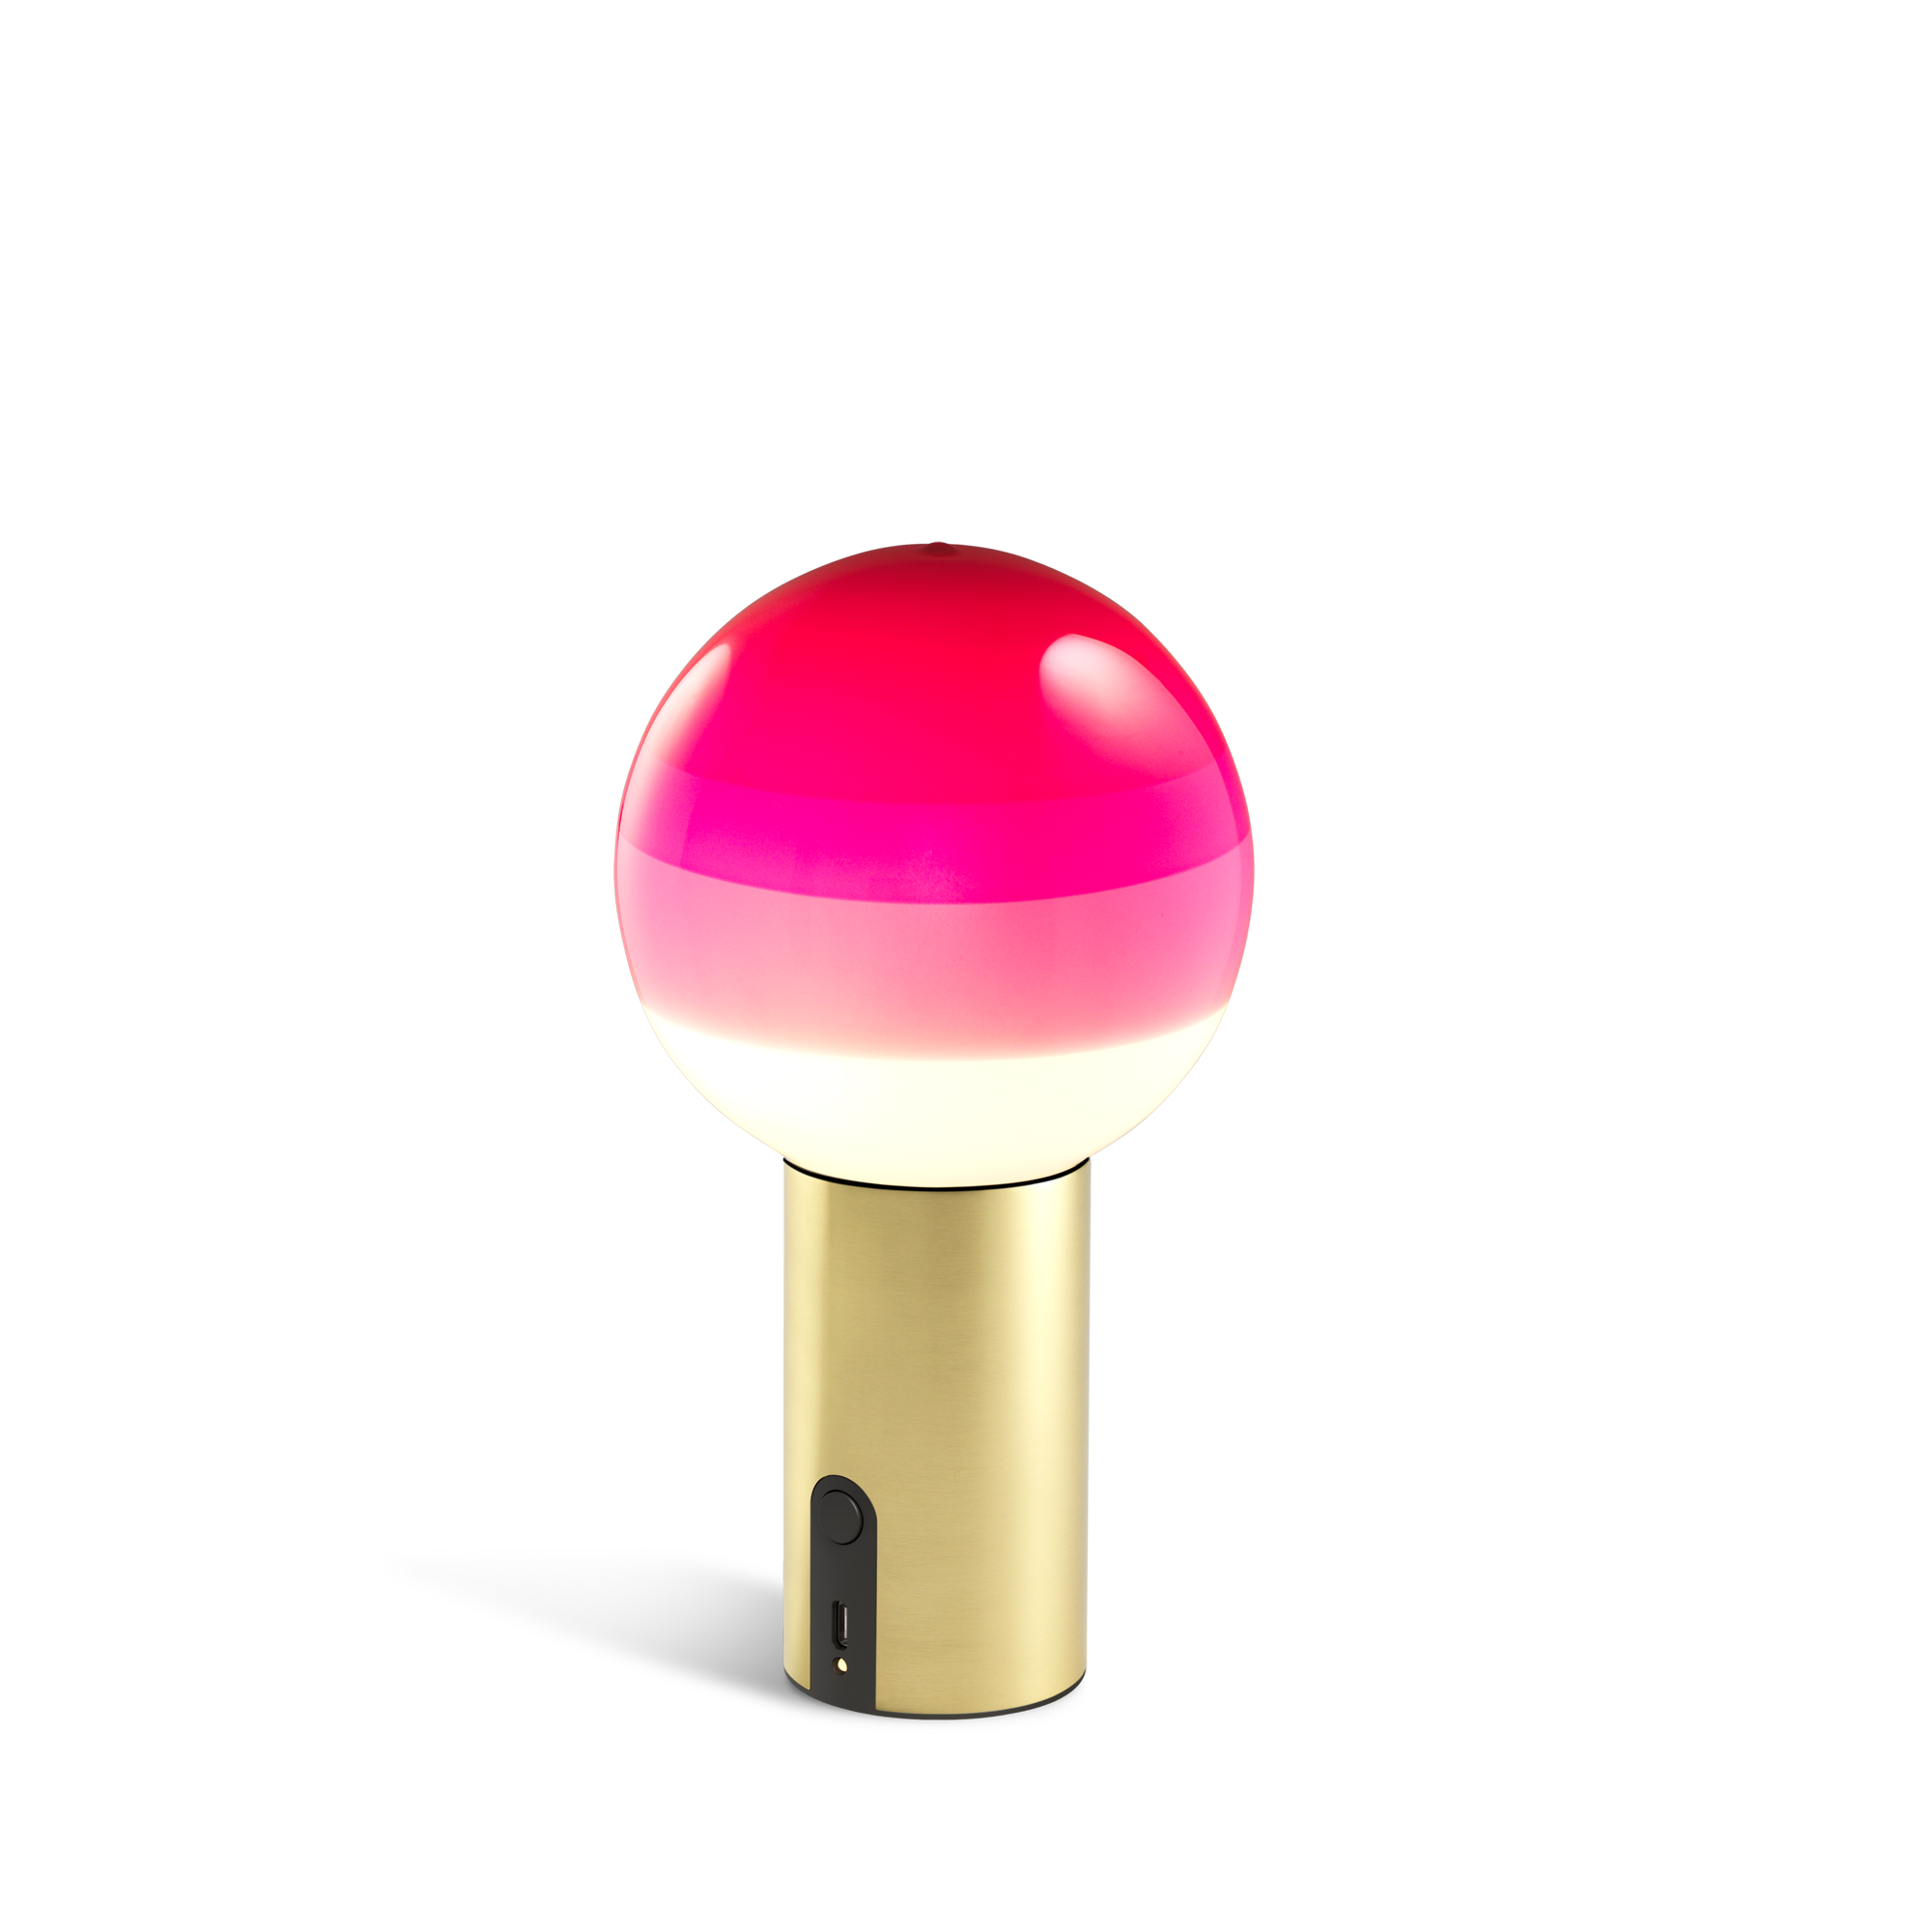 Small portable lamp with brass base and glass sphere with layered shades from white to dark pink